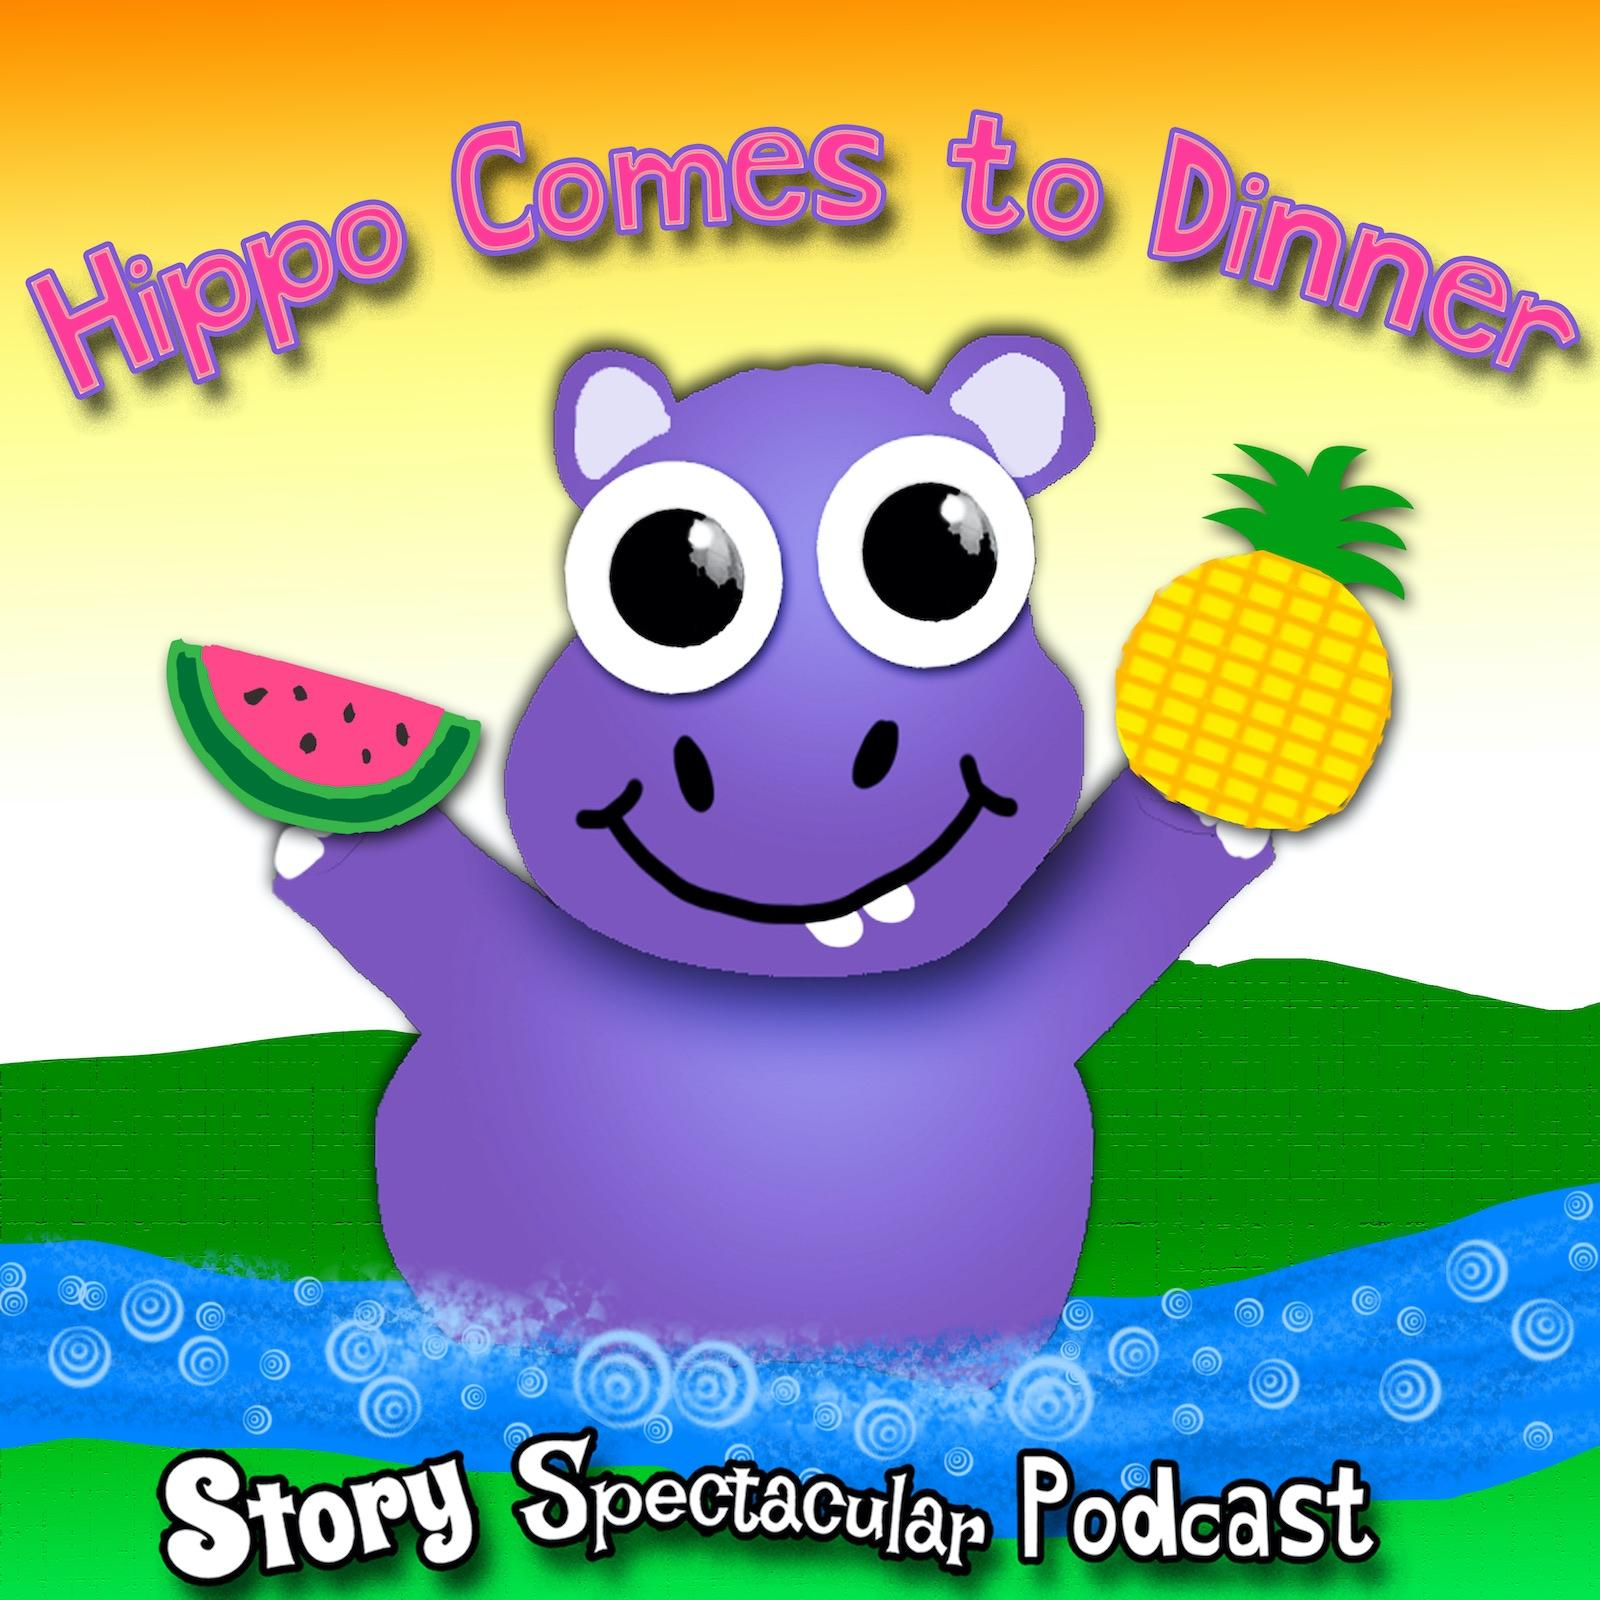 Hippo Comes to Dinner (Bedtime)